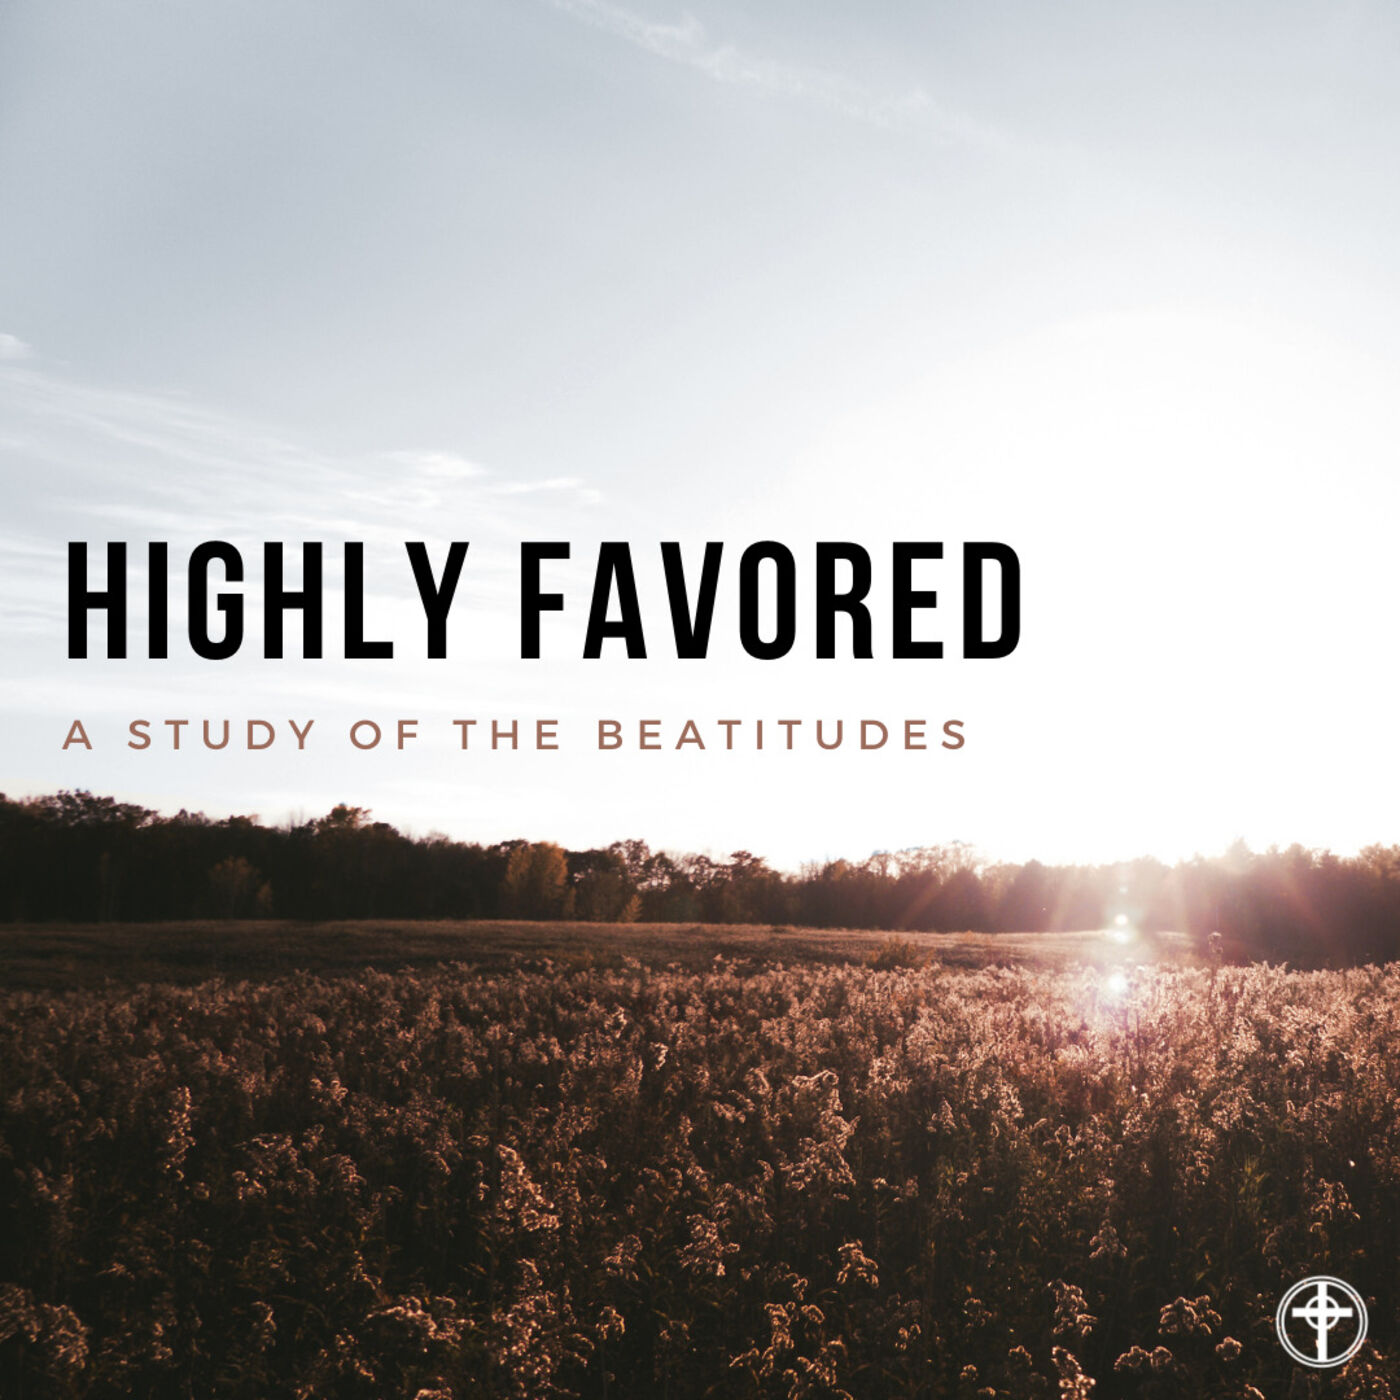 Highly Favored - The Poor in Spirit - Matthew 5:3